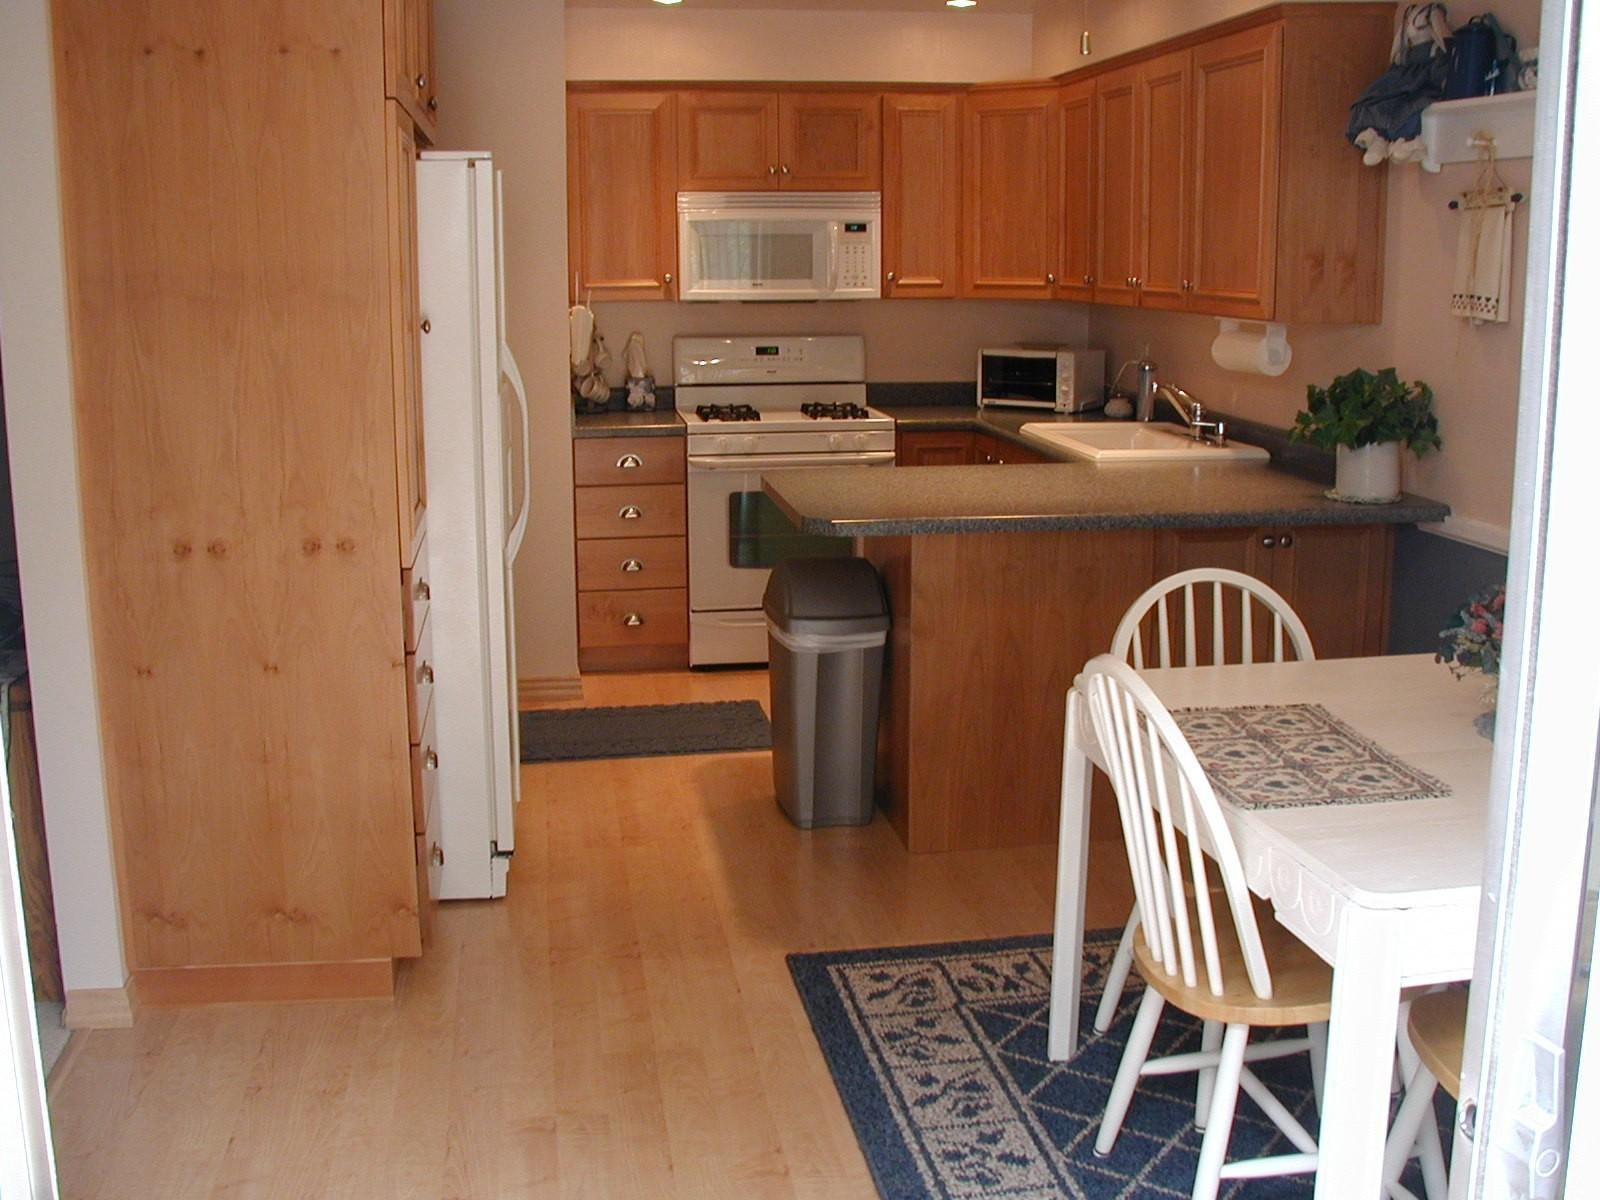 Formica Kitchen Countertops Painted Laminate